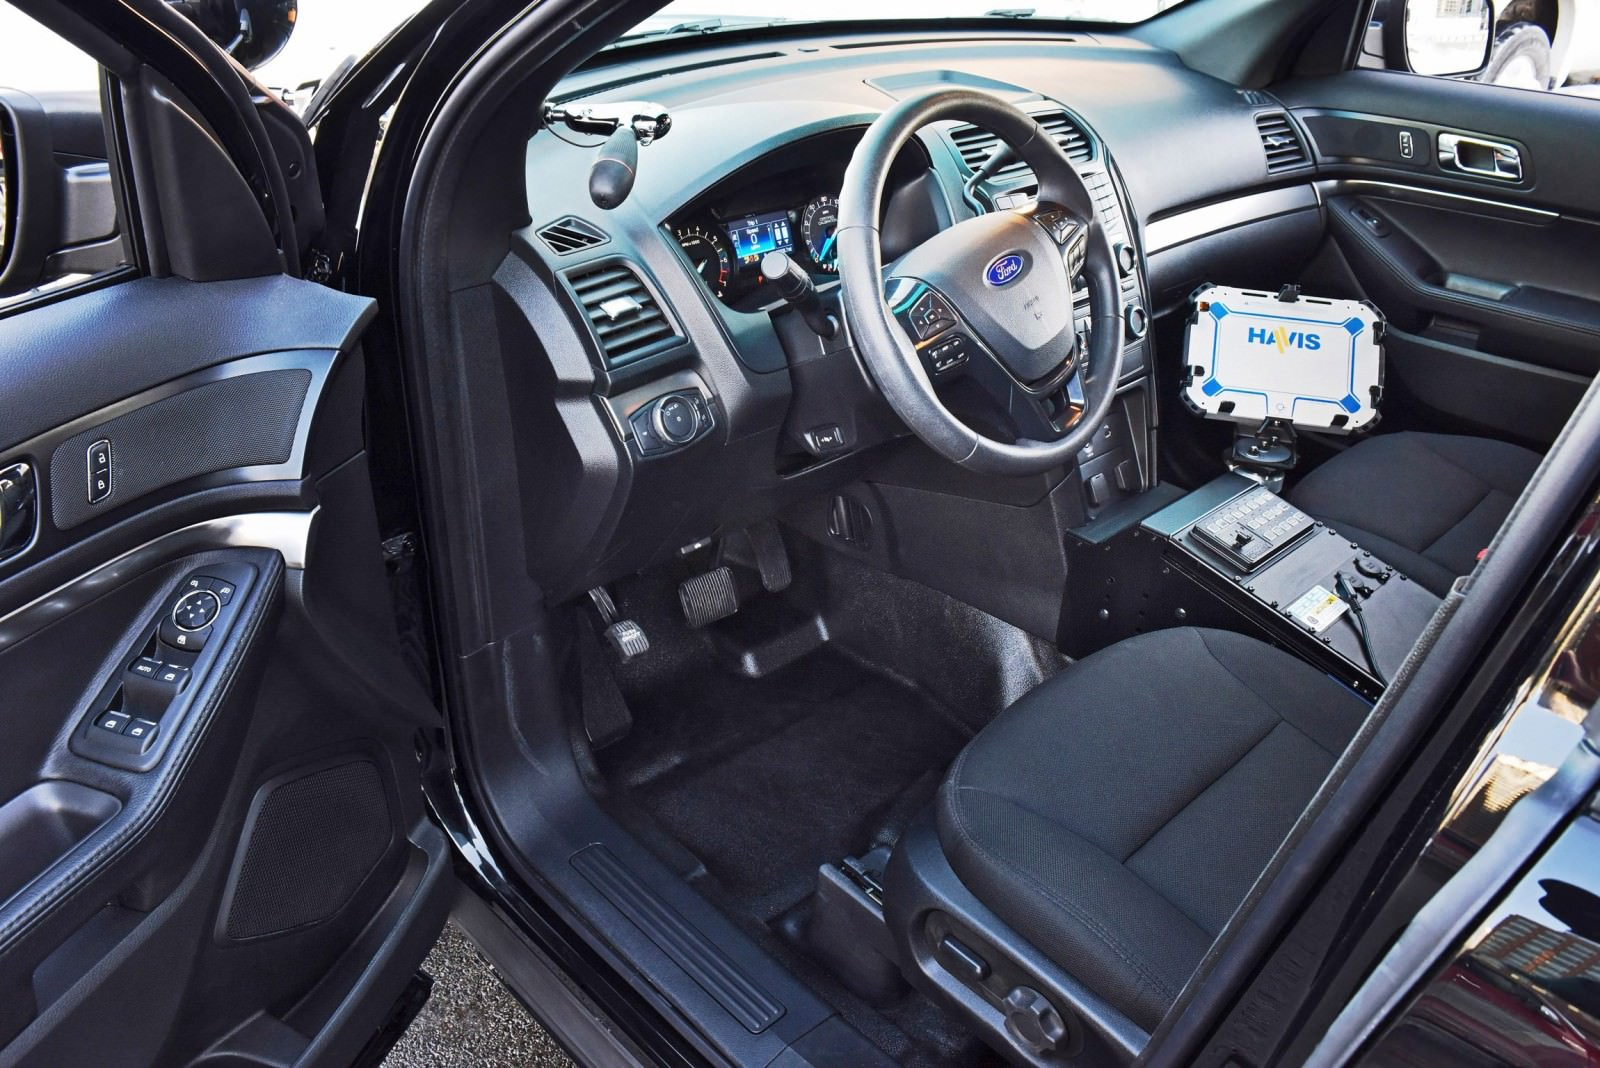 New Ford Police Interceptor Debuts At Chicago Auto Show